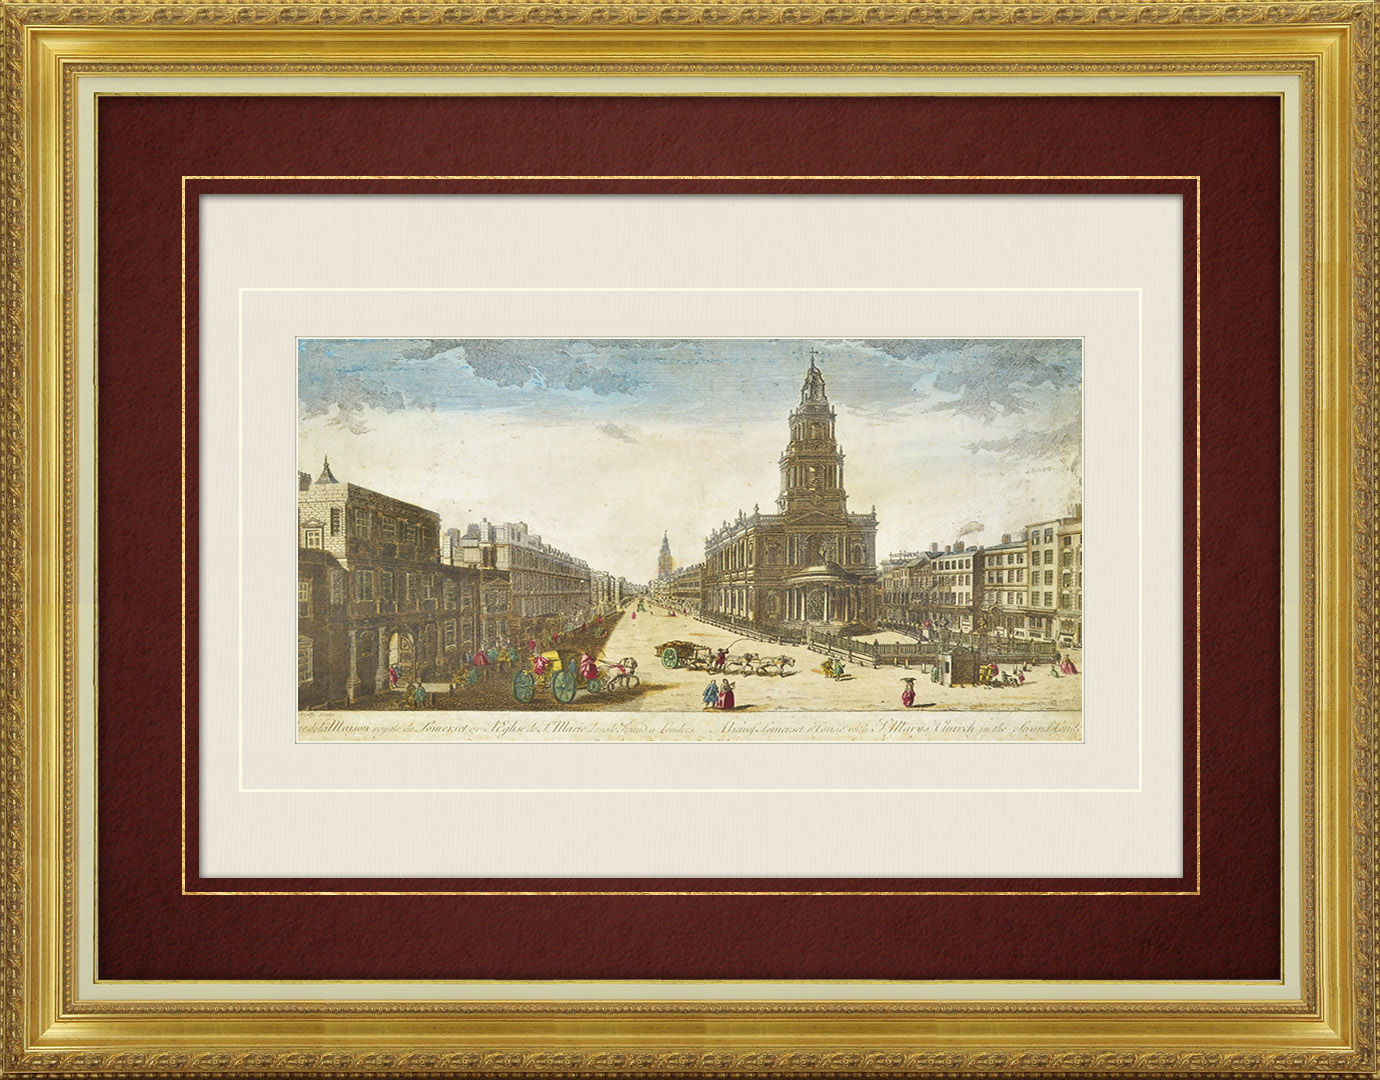 18th Century optical view in original watercolors of Somerset House and St Mary le Strand in London (England)